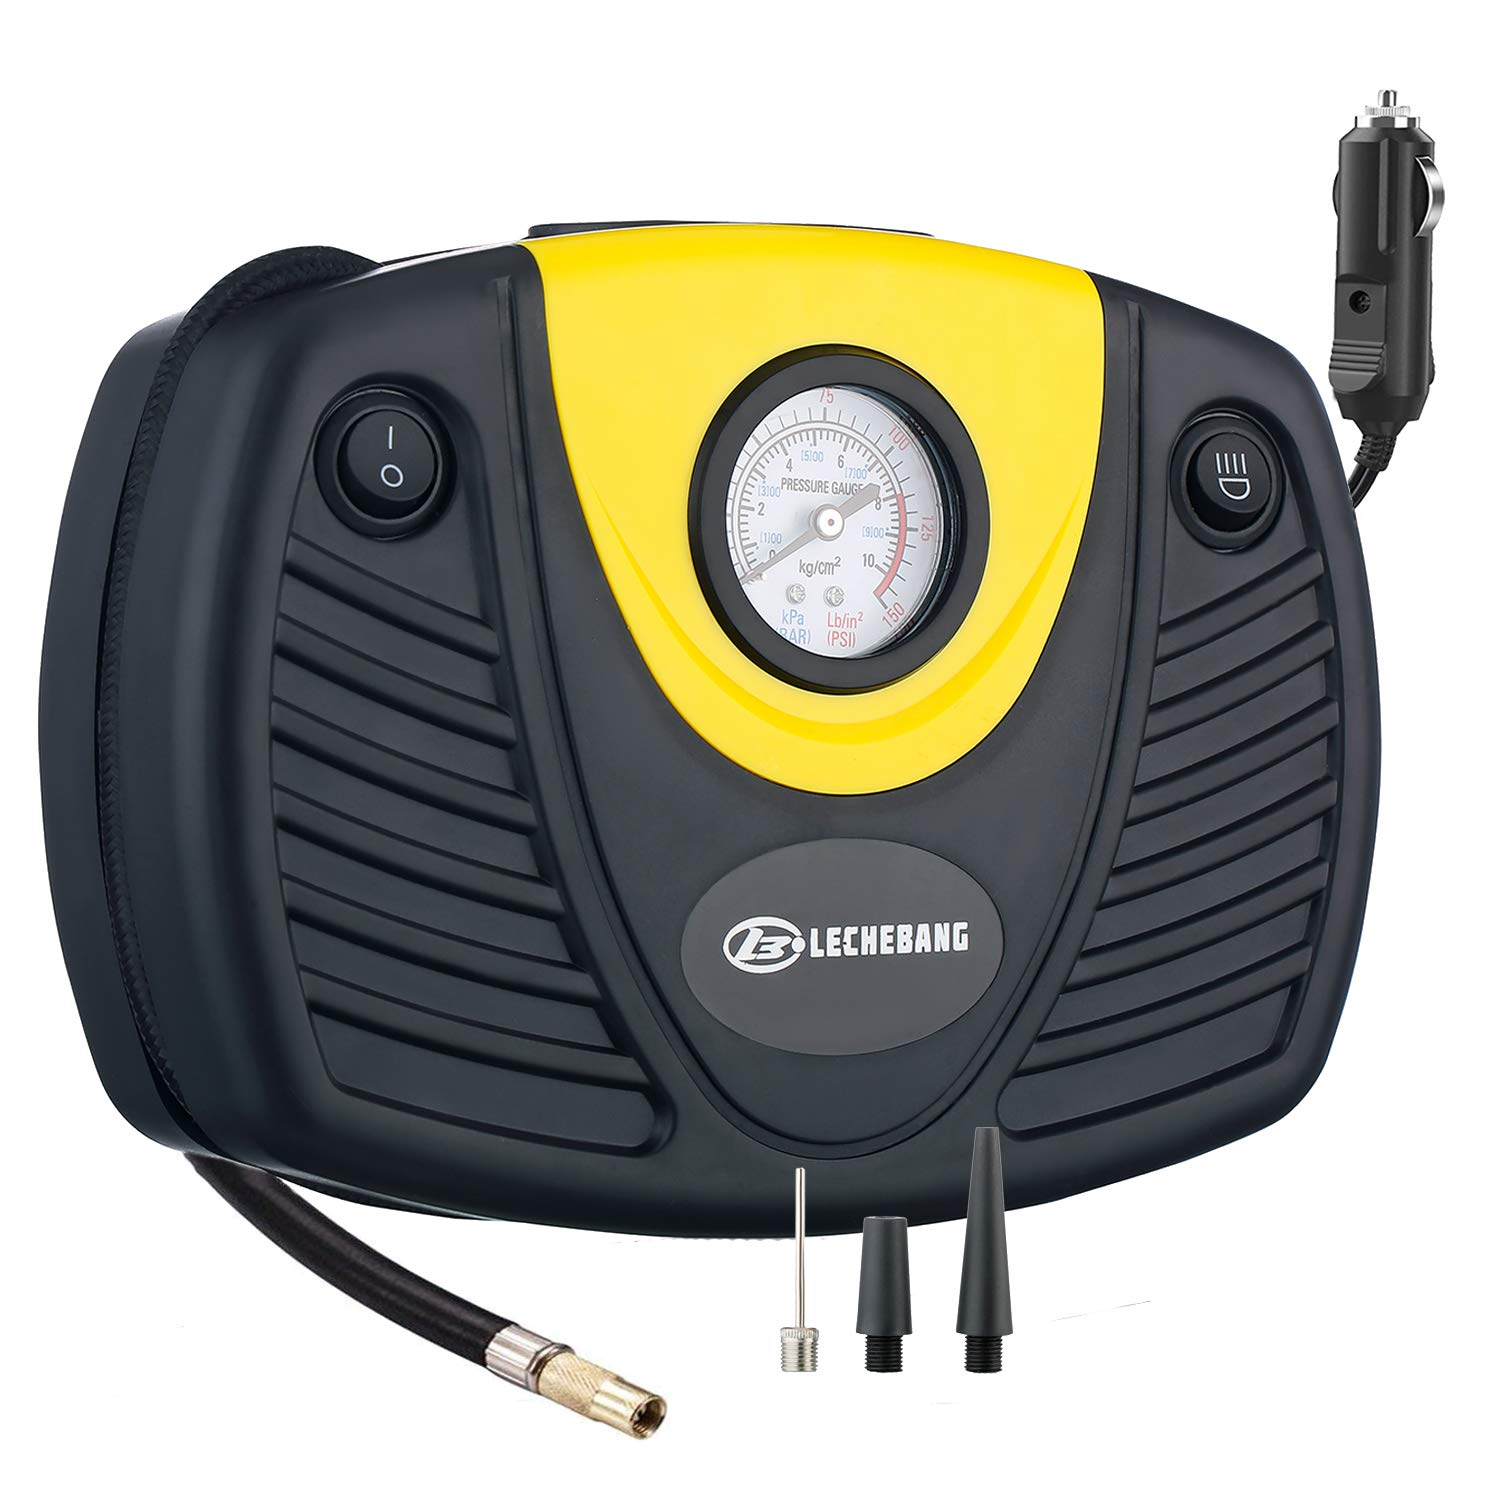 LB LECHEBANG Air Compressor Pump Auto Digital Tire Inflator 12V 150 PSI with Emergency Led Light, 3 High-air Flow Nozzles Adapt for Cars Bicycles and Basketballs (Black and Yellow) Xin Yi Bang Ltd.